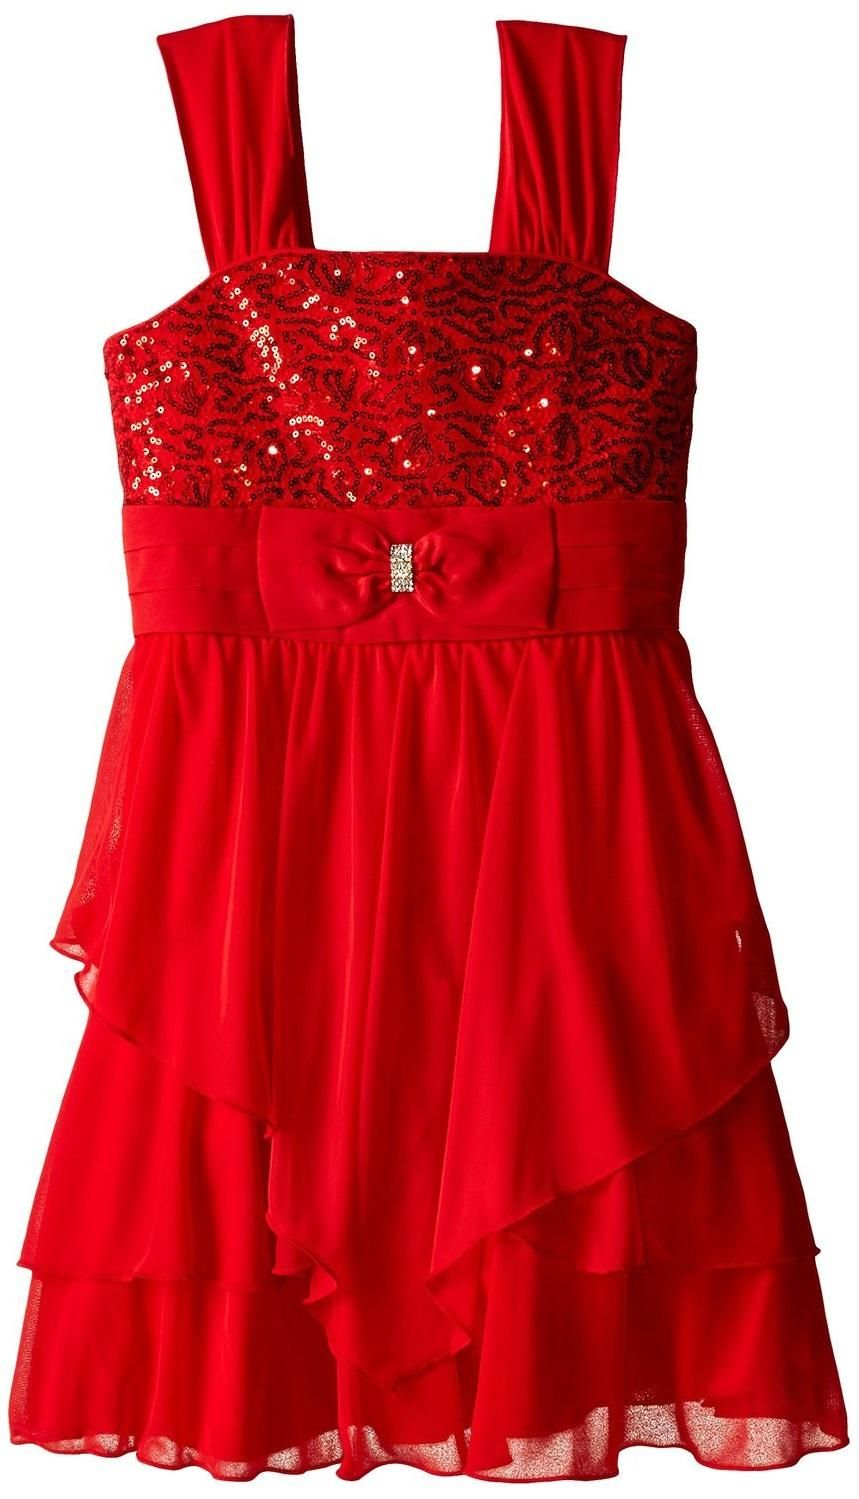 Ruffle Dress With Sequin Bodice And Bow Waistband - Red